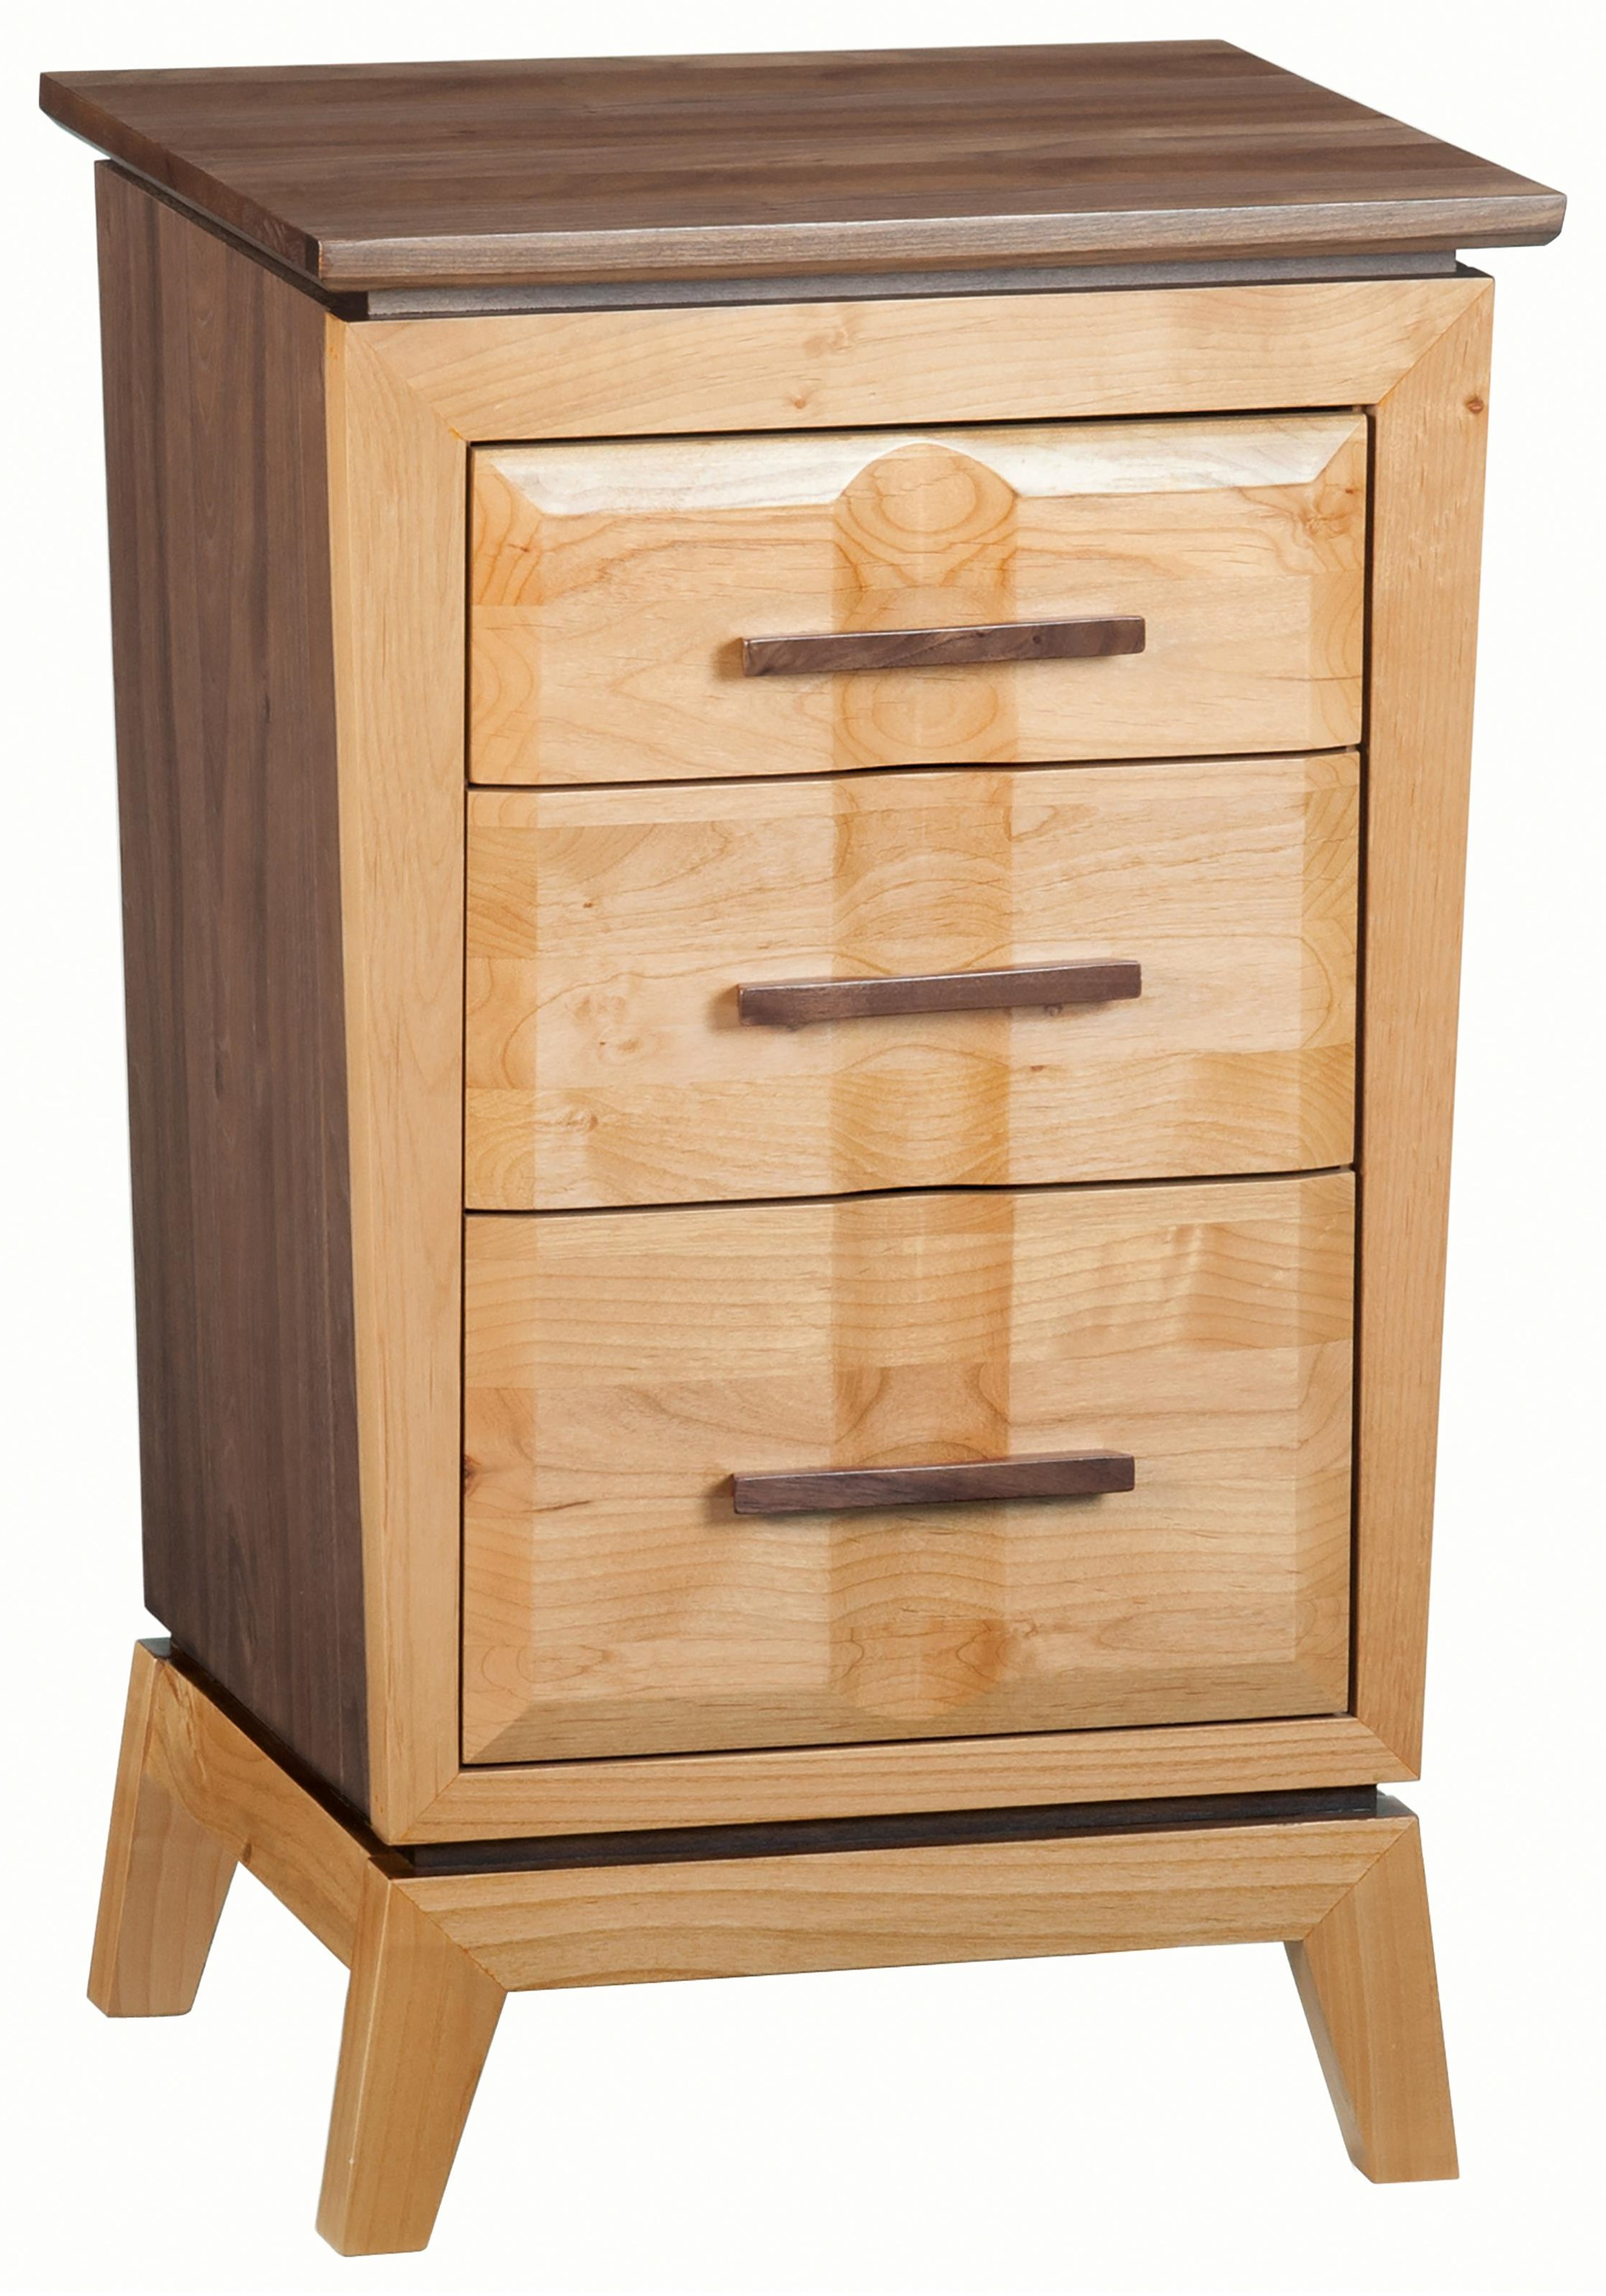 Addison Nightstand by Whittier Wood at Crowley Furniture & Mattress